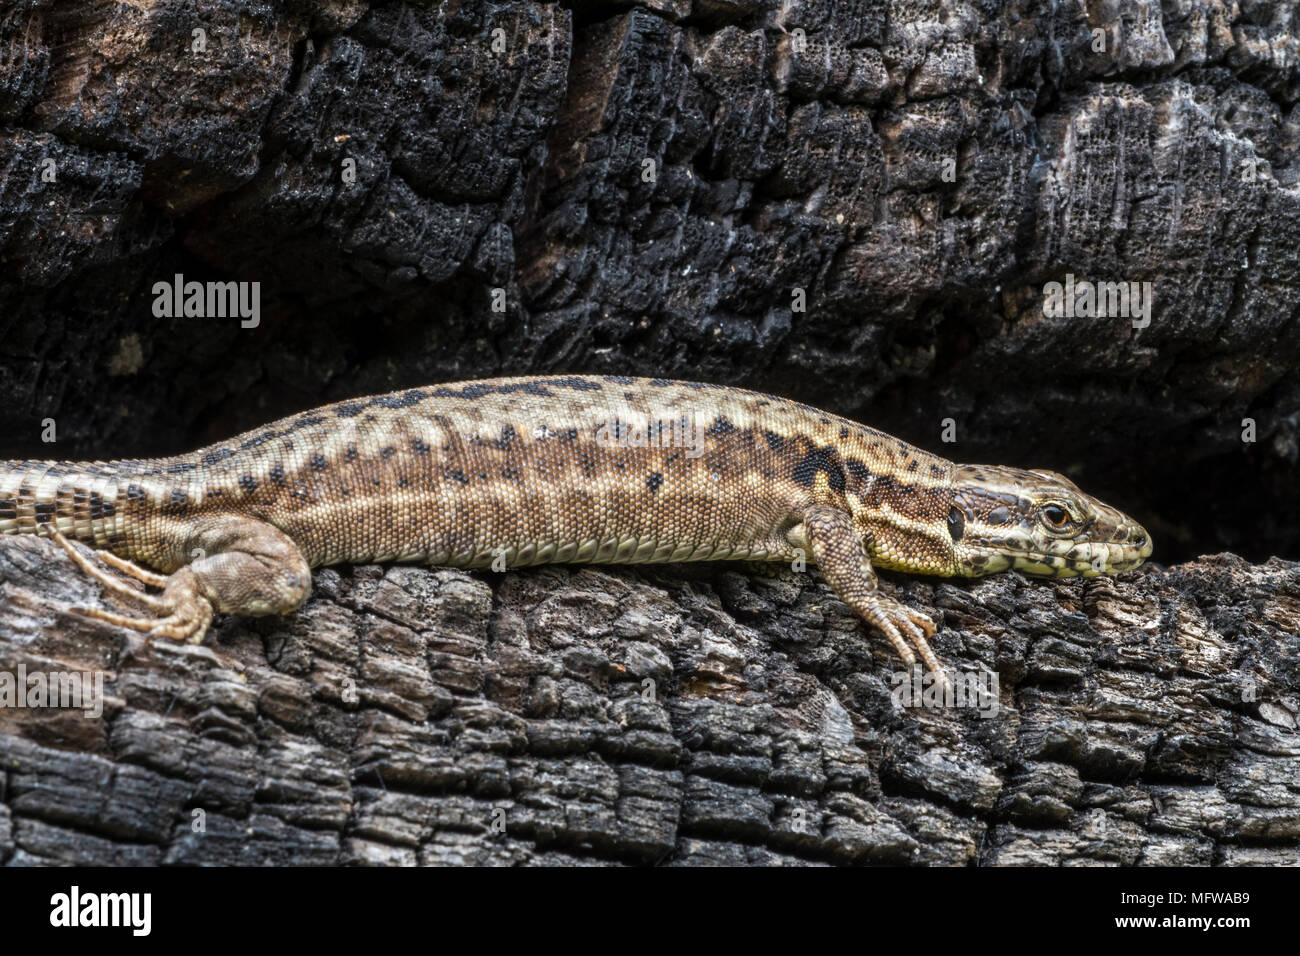 Common wall lizard (Podarcis muralis / Lacerta muralis) basking in the sun on scorched tree trunk - Stock Image